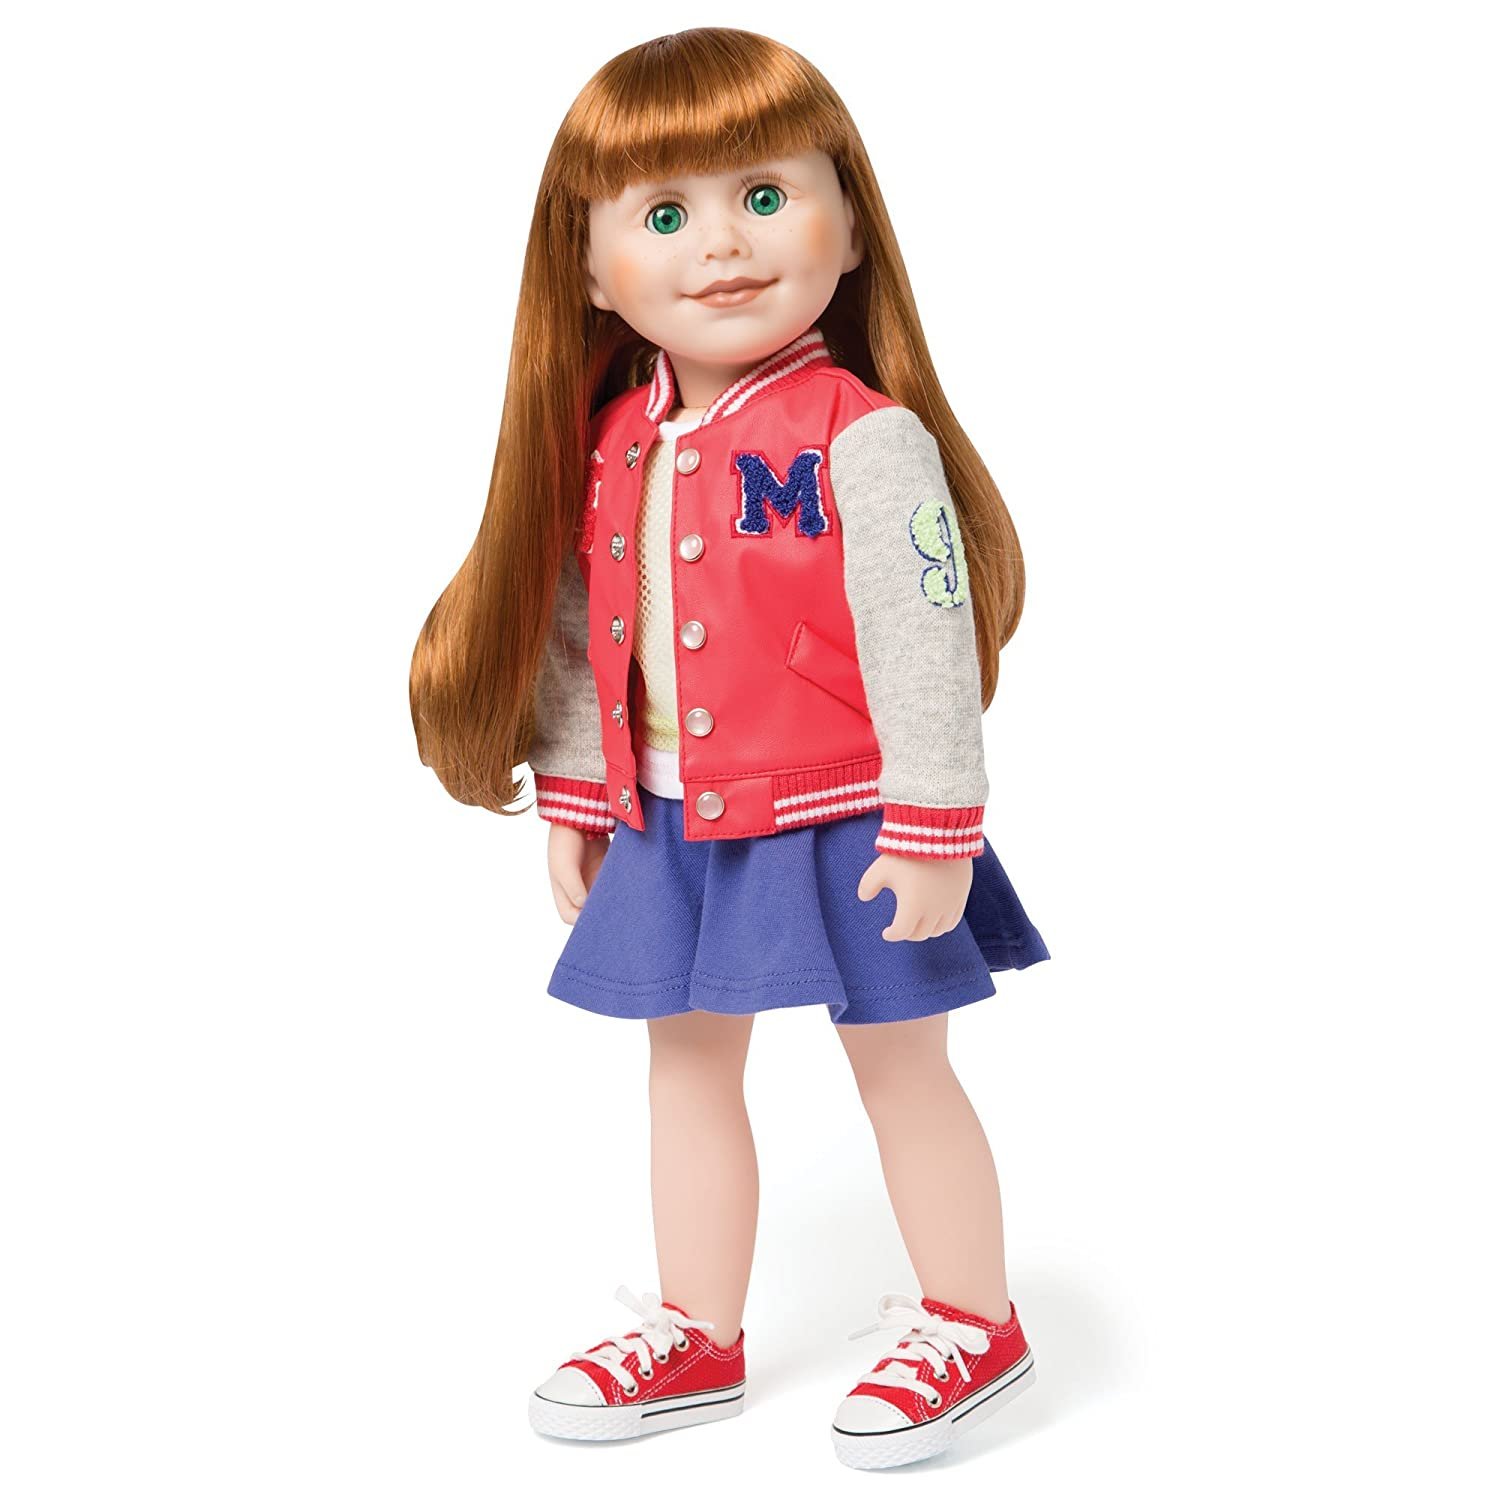 Maplelea's Campus Collection Outfit for 18 Inch Dolls by Maplelea